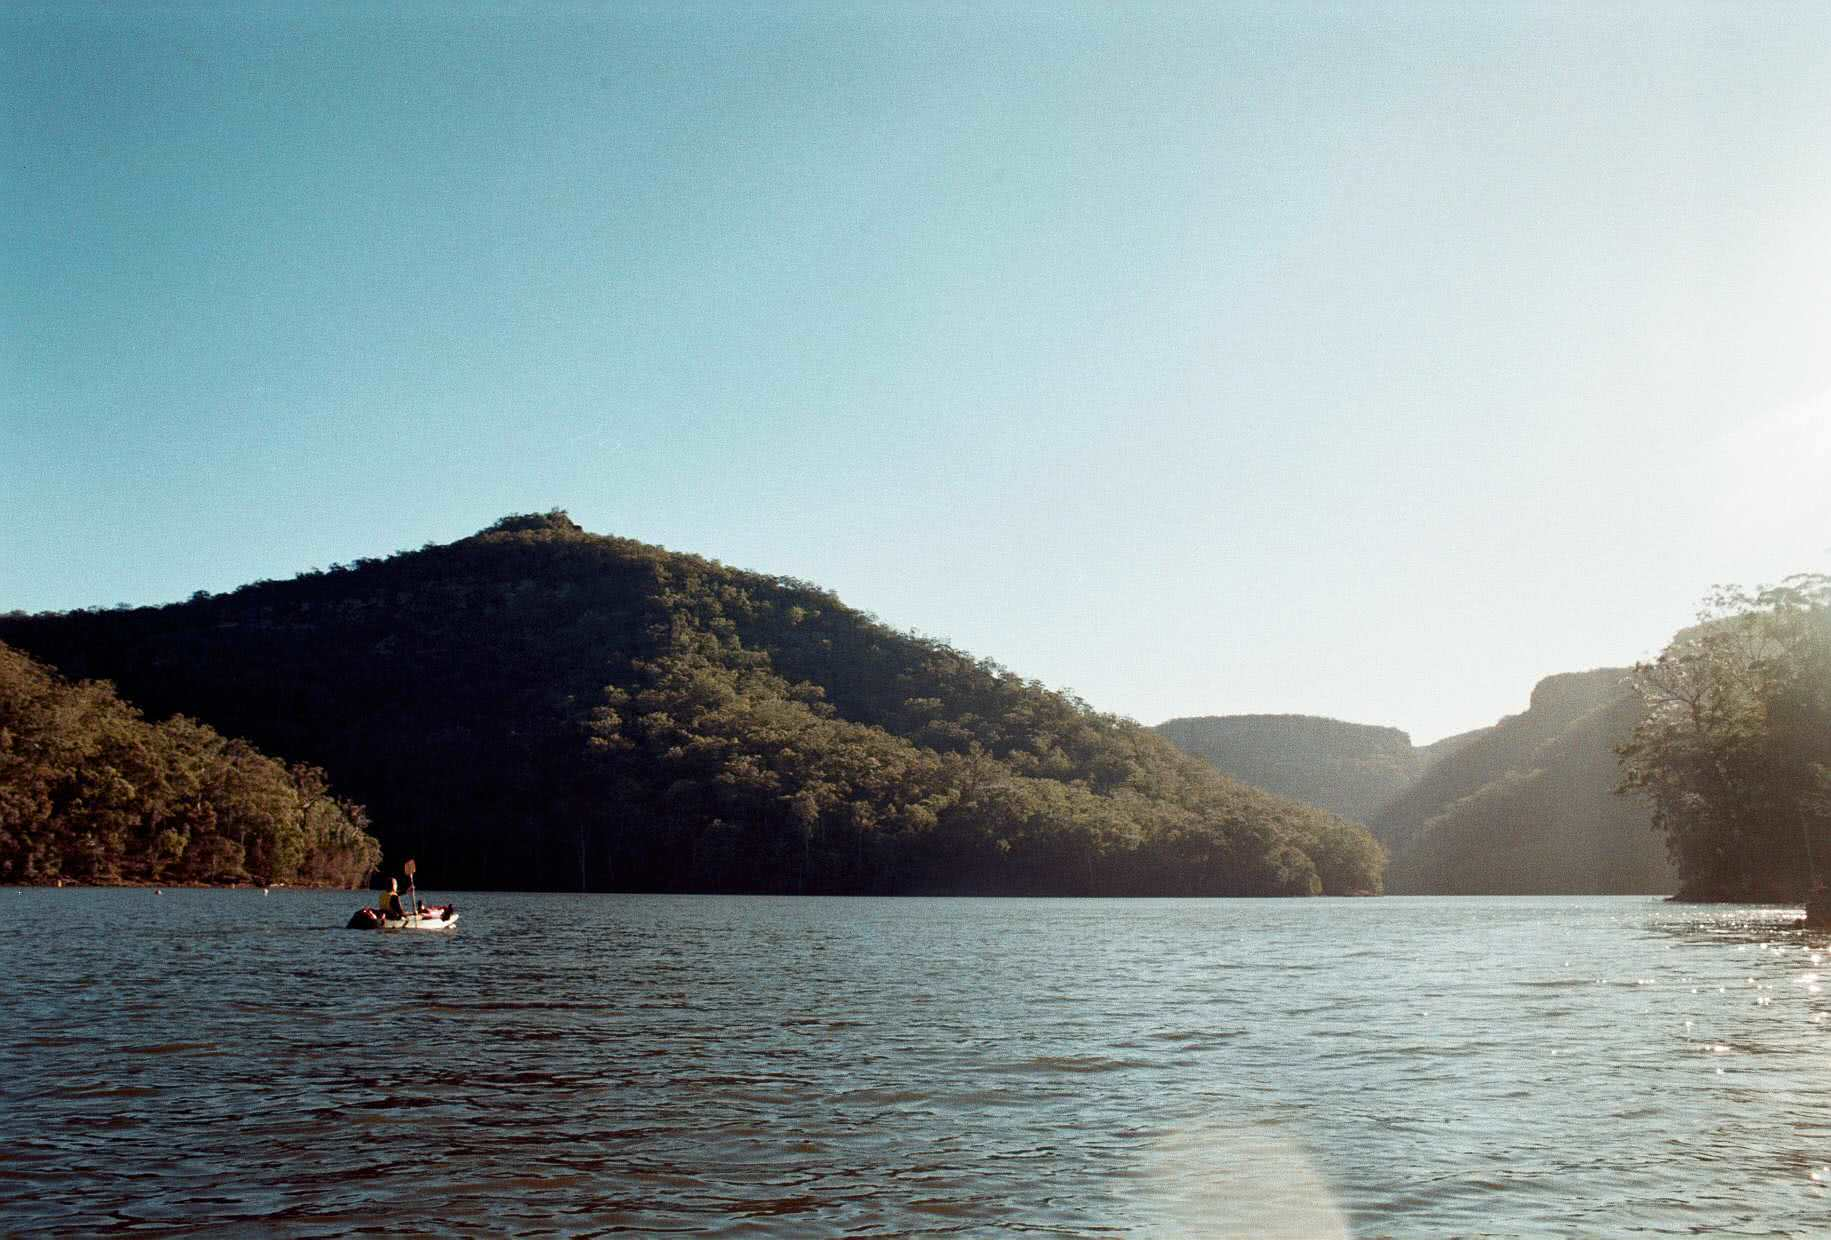 A Notification Vacation // The Cabin Series With Unyoked, photo by Tom Darley, miguel, unyoked cabin, kangaroo valley, kayaking